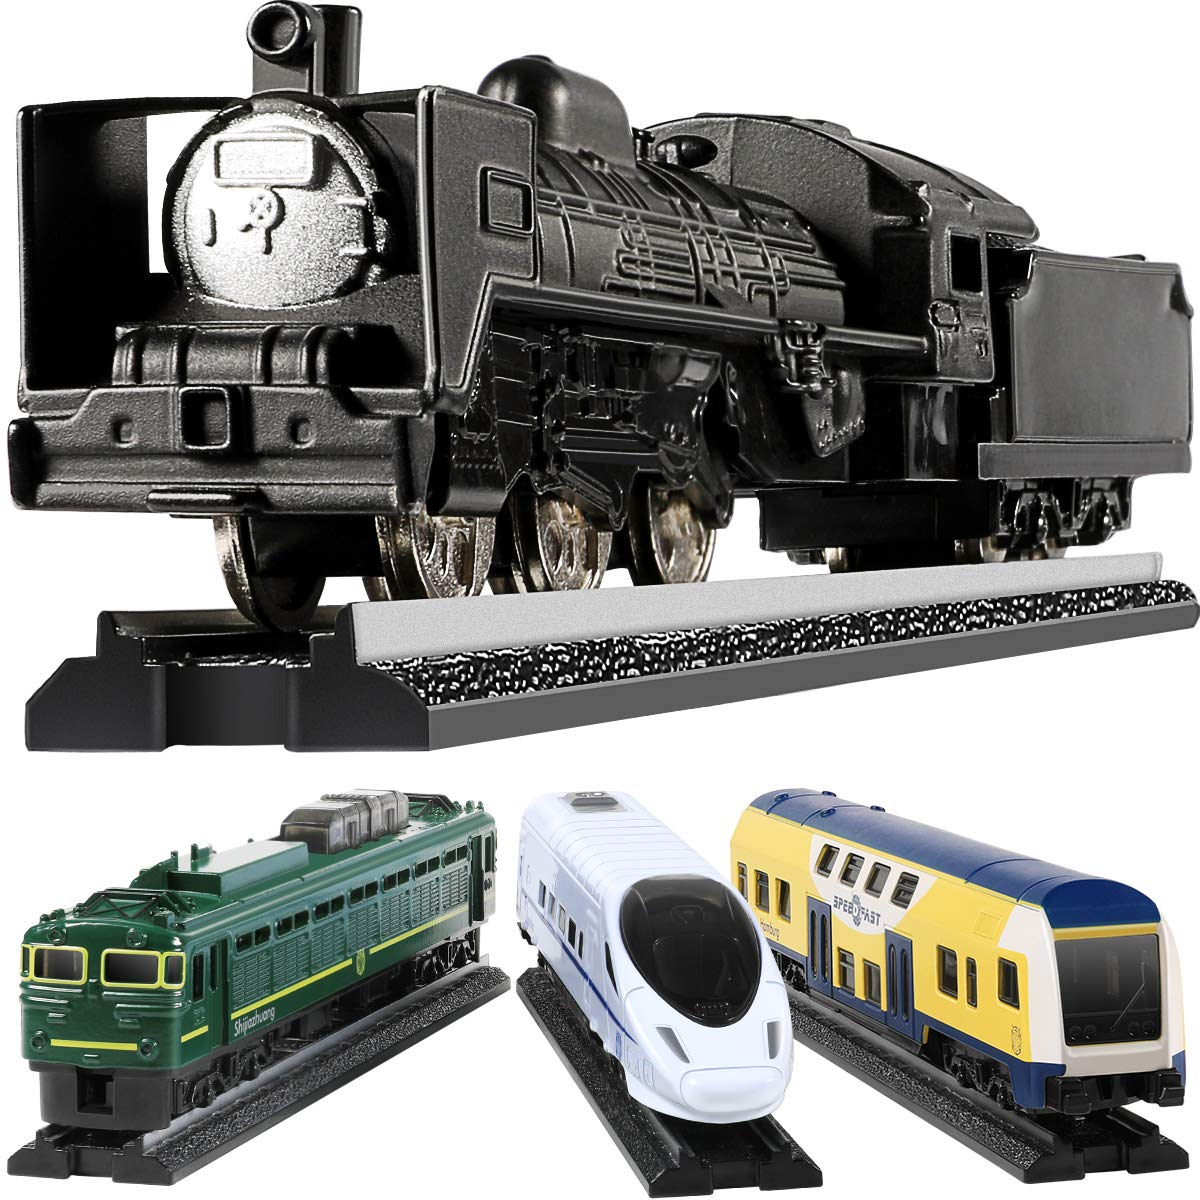 GEYIIE  Alloy Kids Trains Set Toys, Railway Play Toys 4 Pack With 6 Tracks for Boys, Girls, Classical , Metro Style Train Educational Birthday Toys by Geyiie